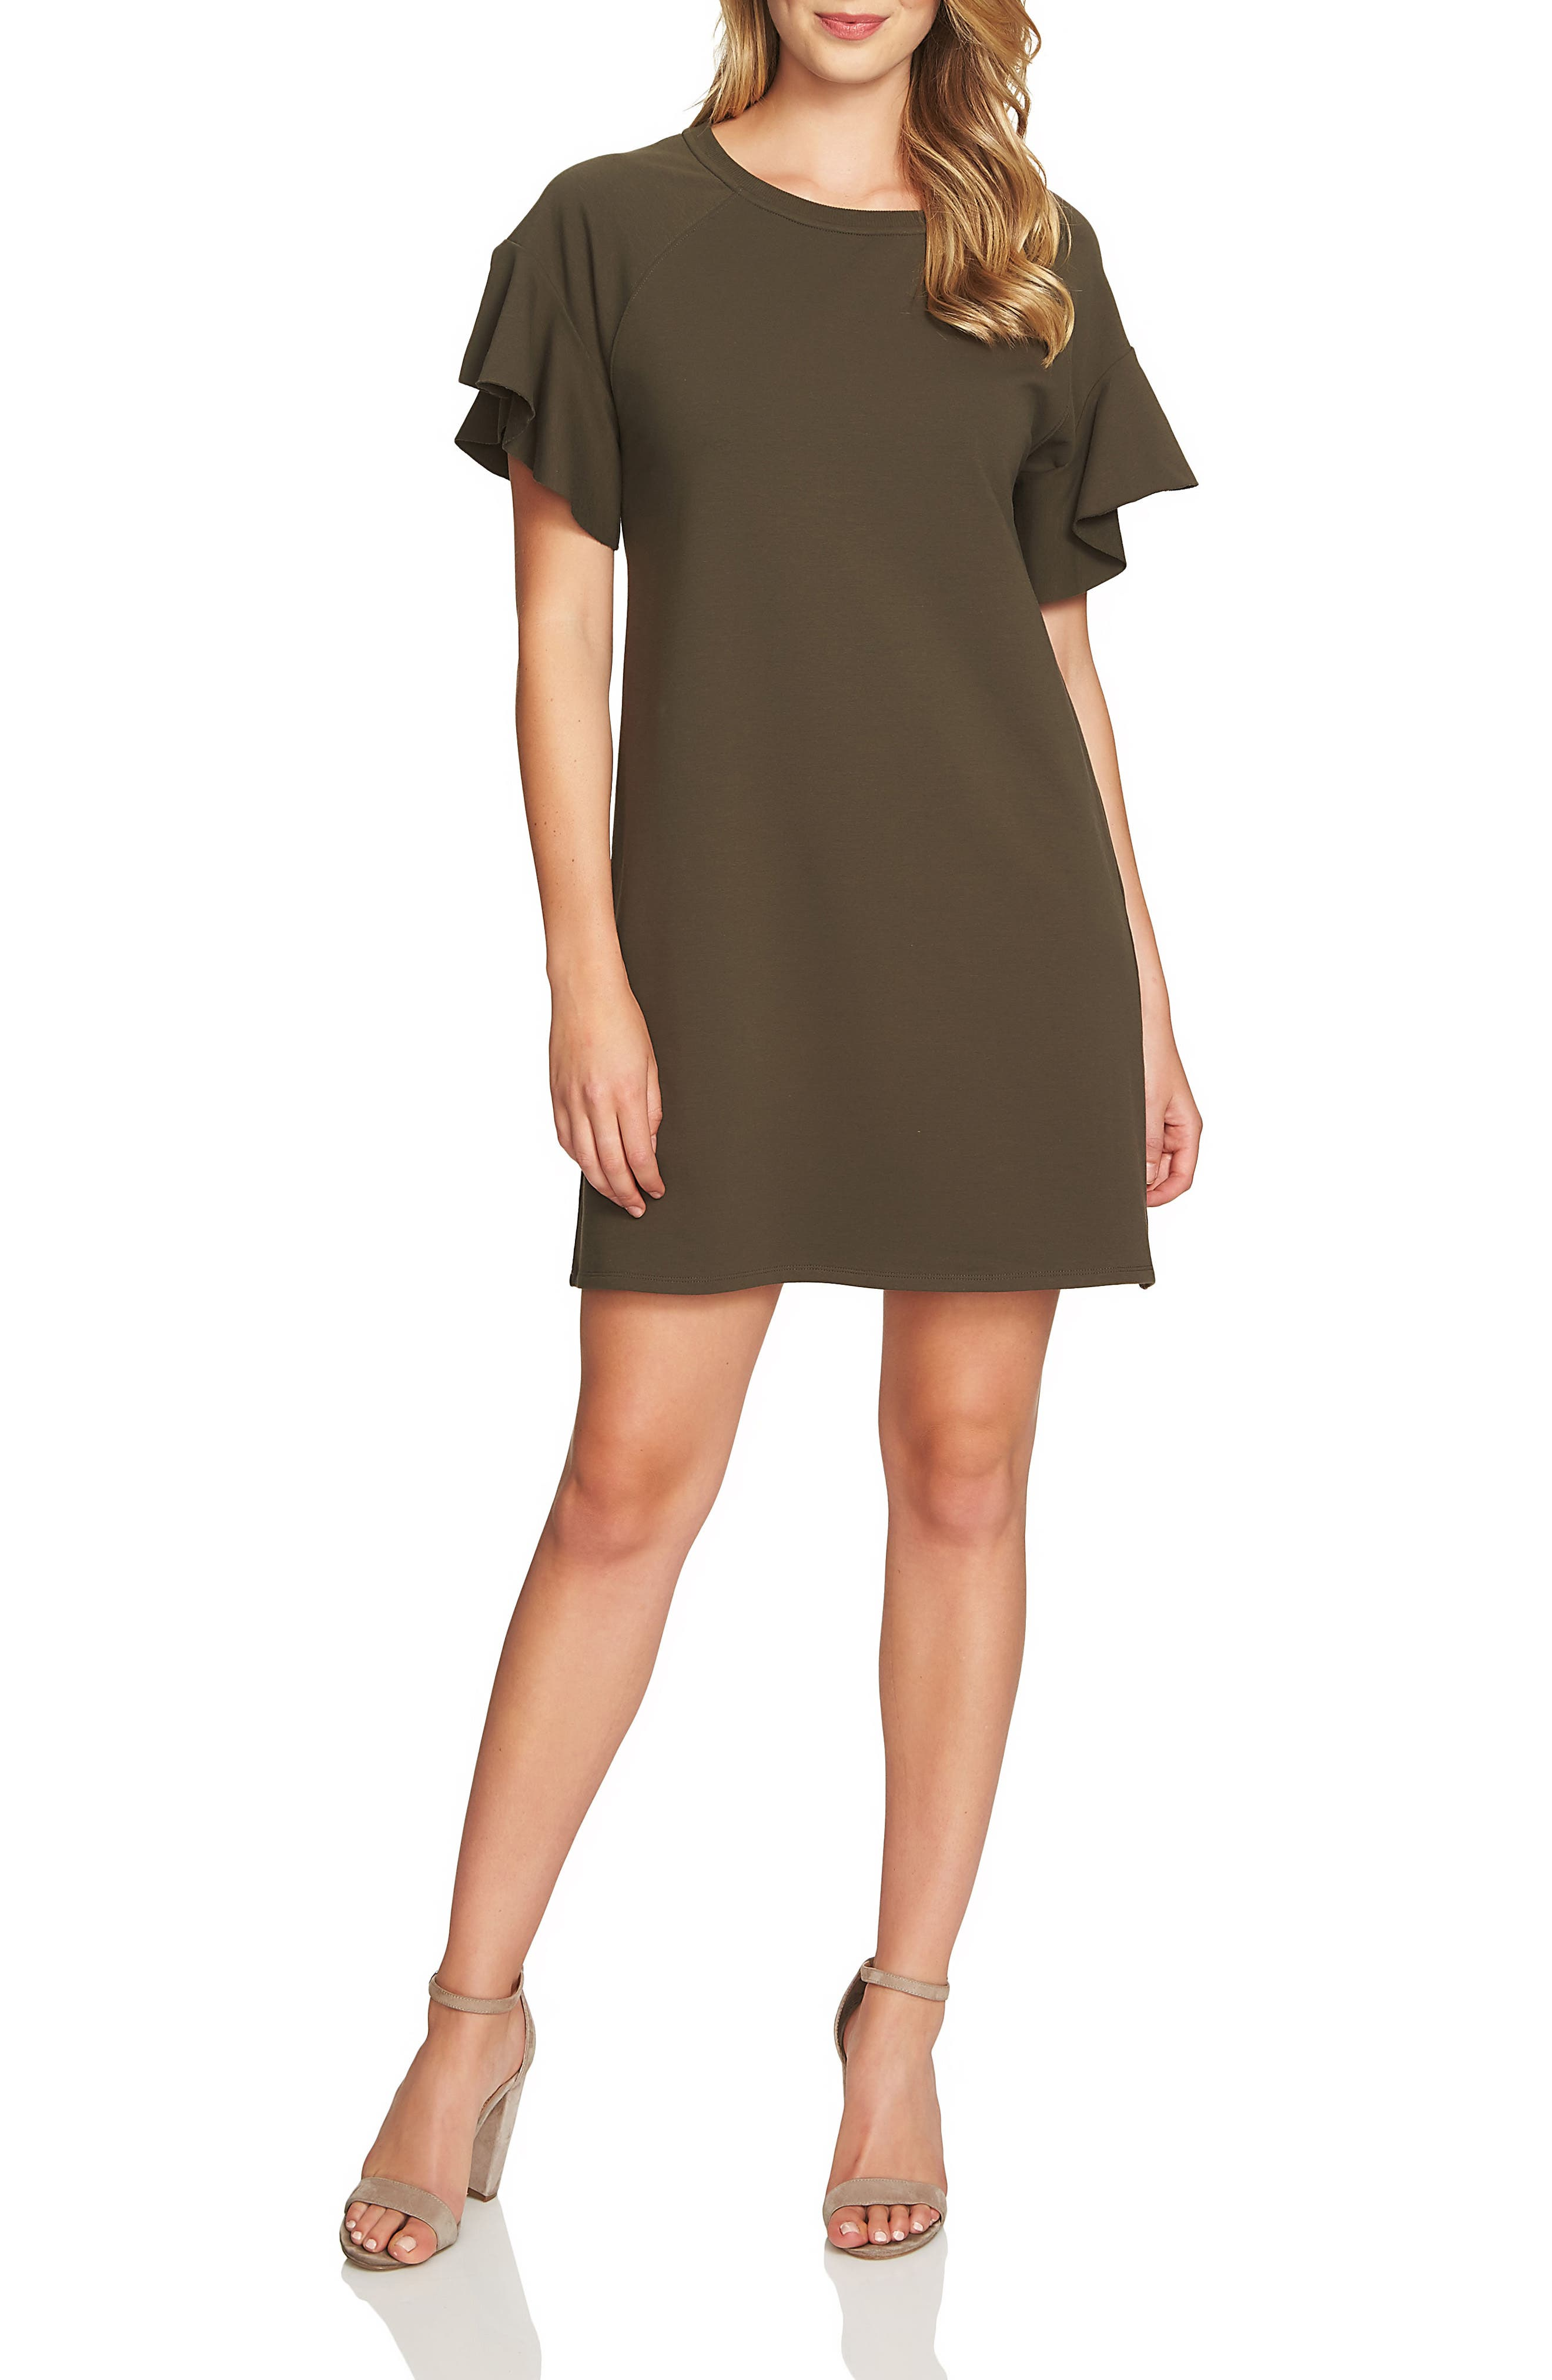 French Terry T-Shirt Dress,                             Main thumbnail 1, color,                             Green Olive